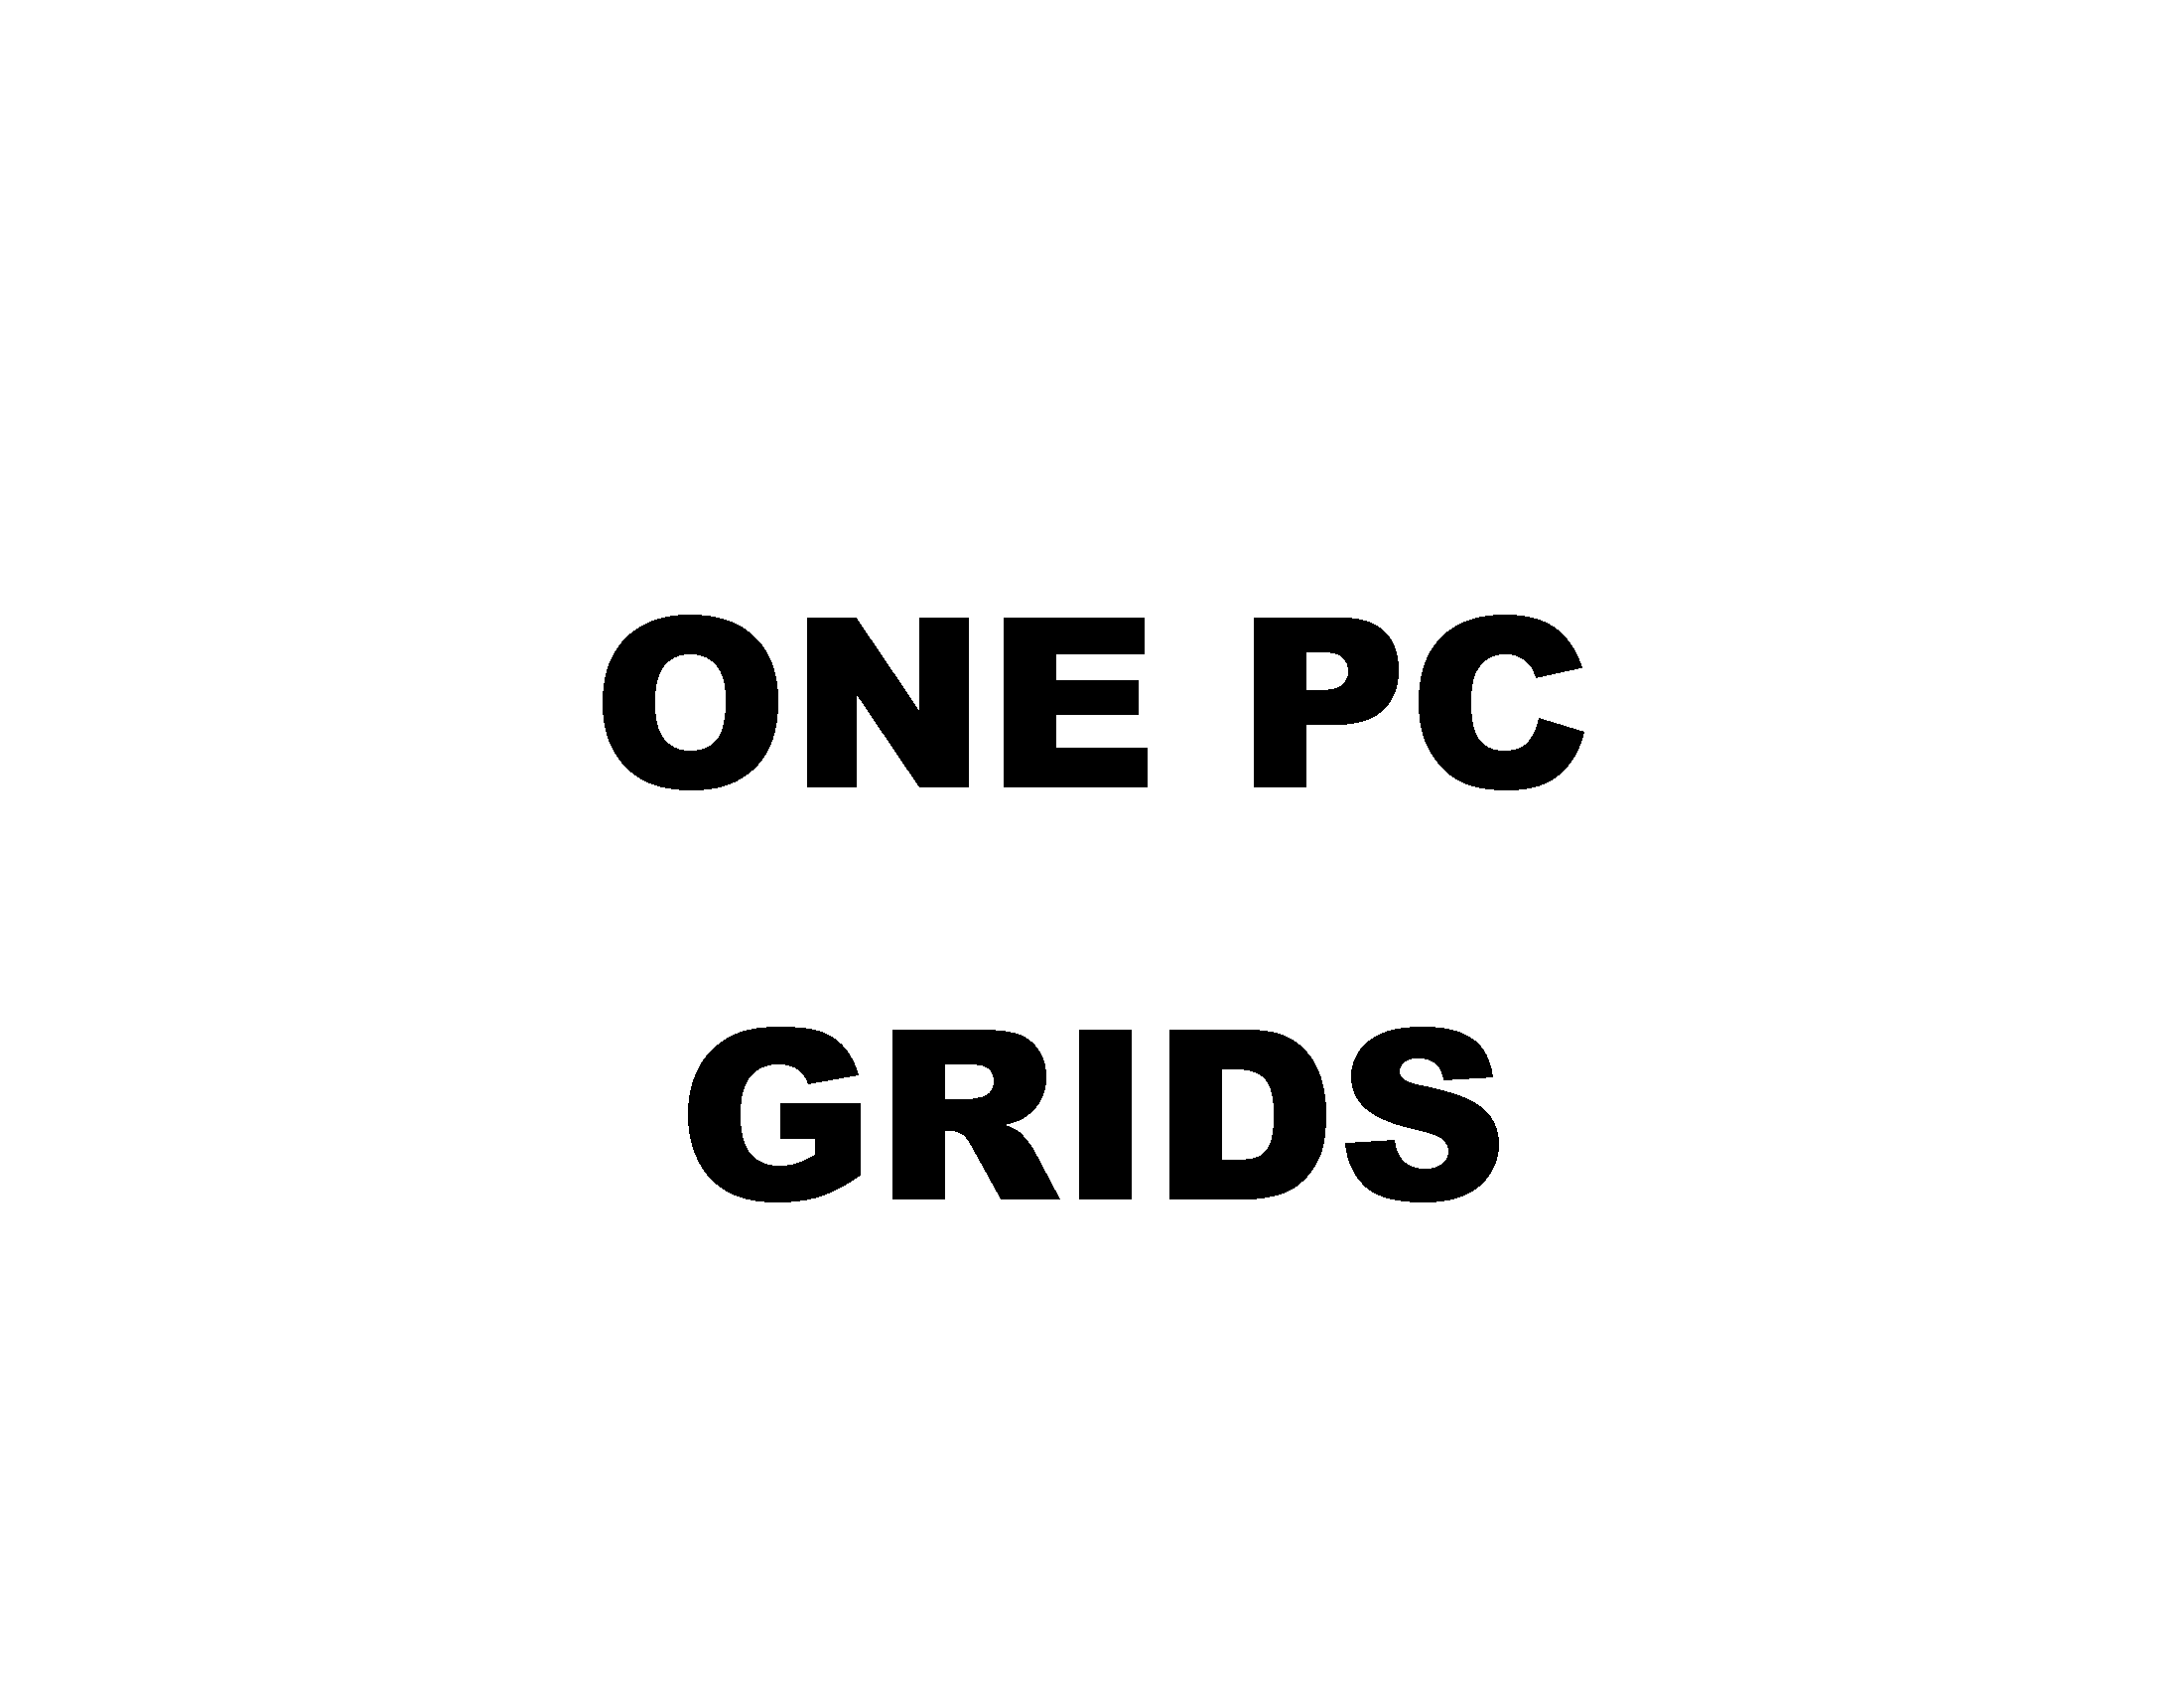 ONE_PC_GRID_4b461858d36a4.png